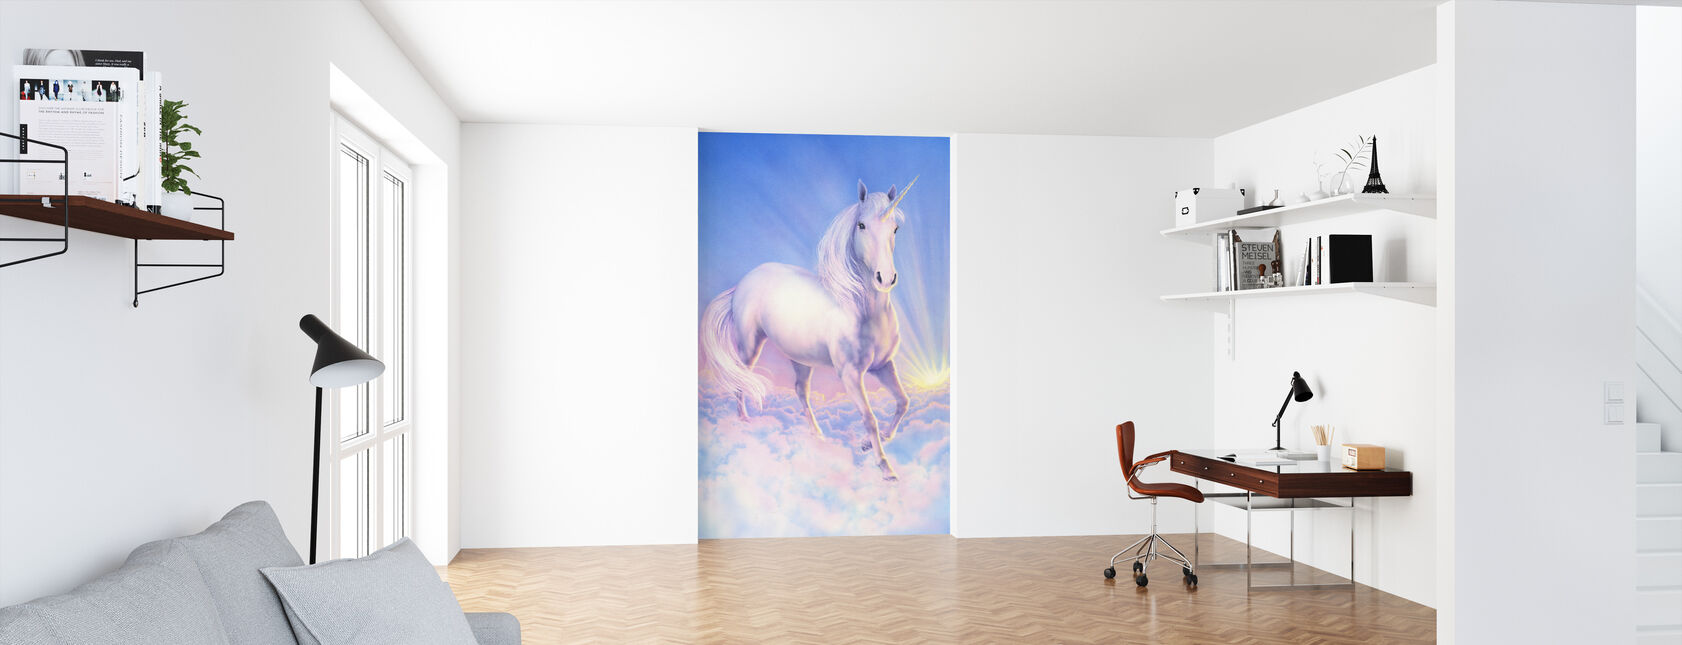 Dream Unicorn - Wallpaper - Office